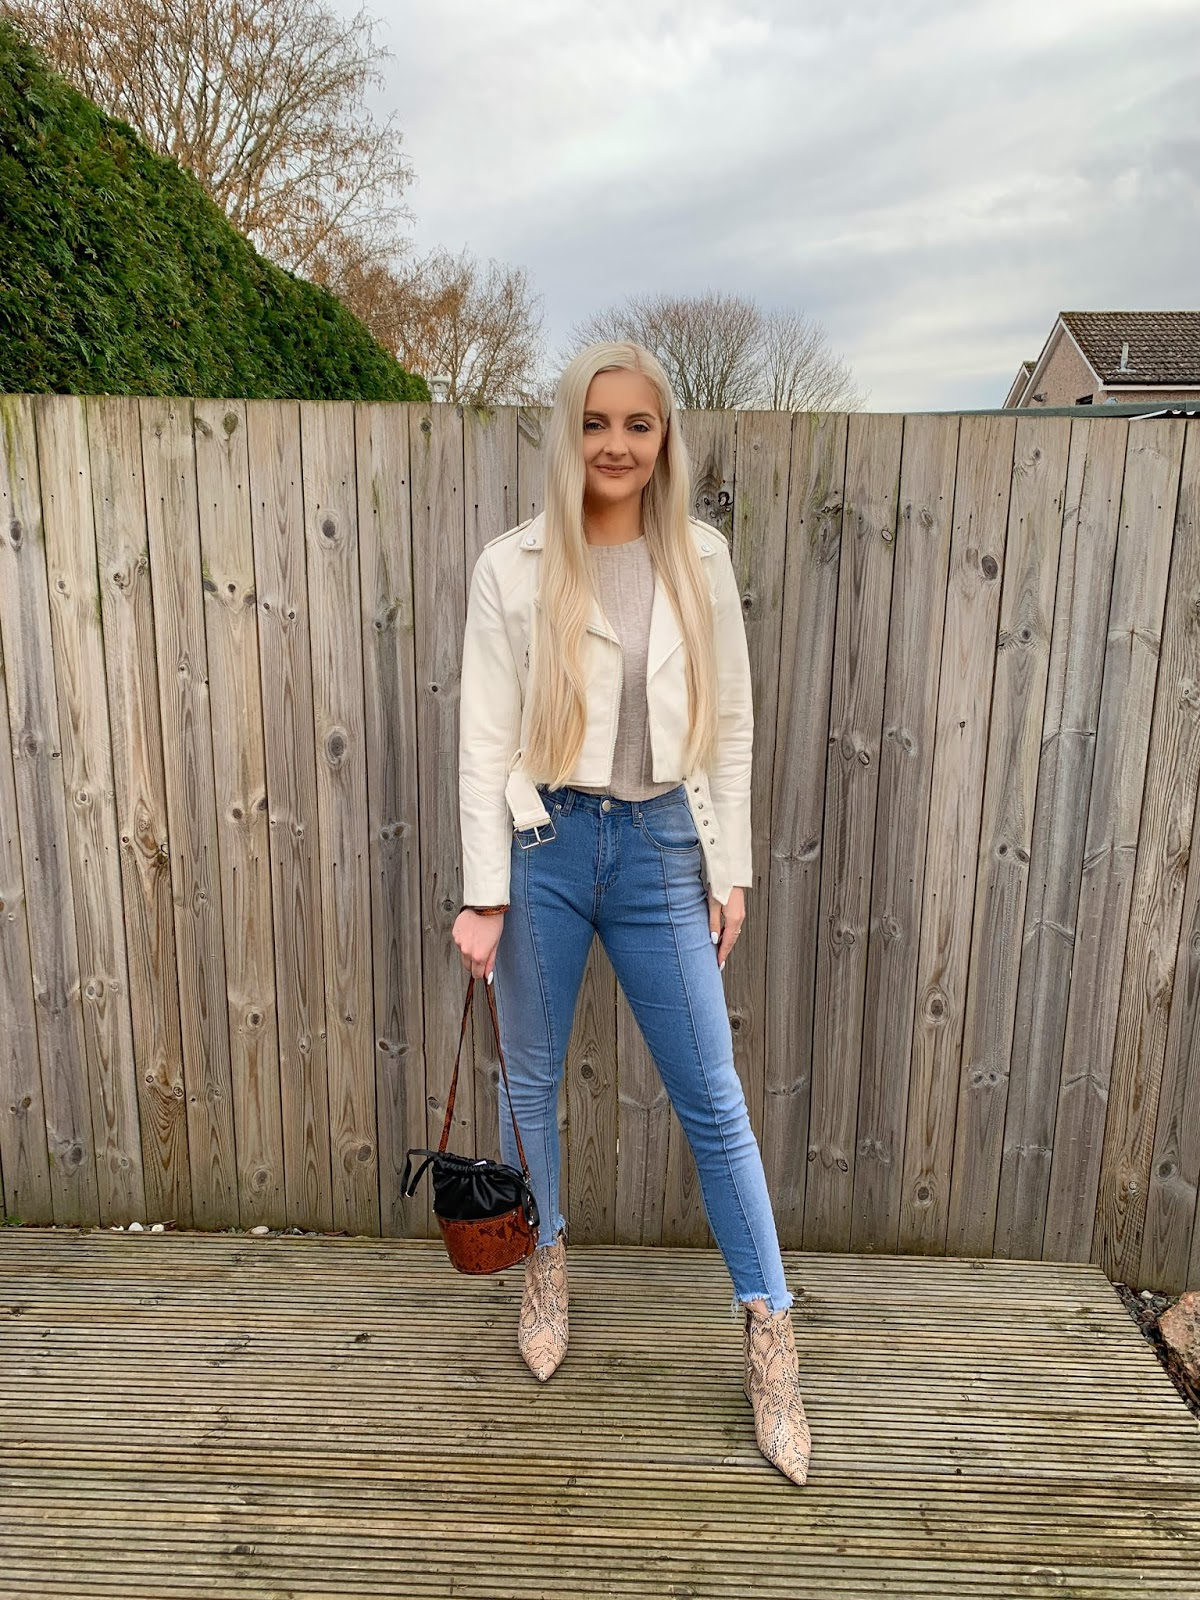 bd8779af74a5 I picked this stunning white leather jacket up from Bershka last summer and  has been a wardrobe staple. Public Desire - Snake-print ankle boots ...